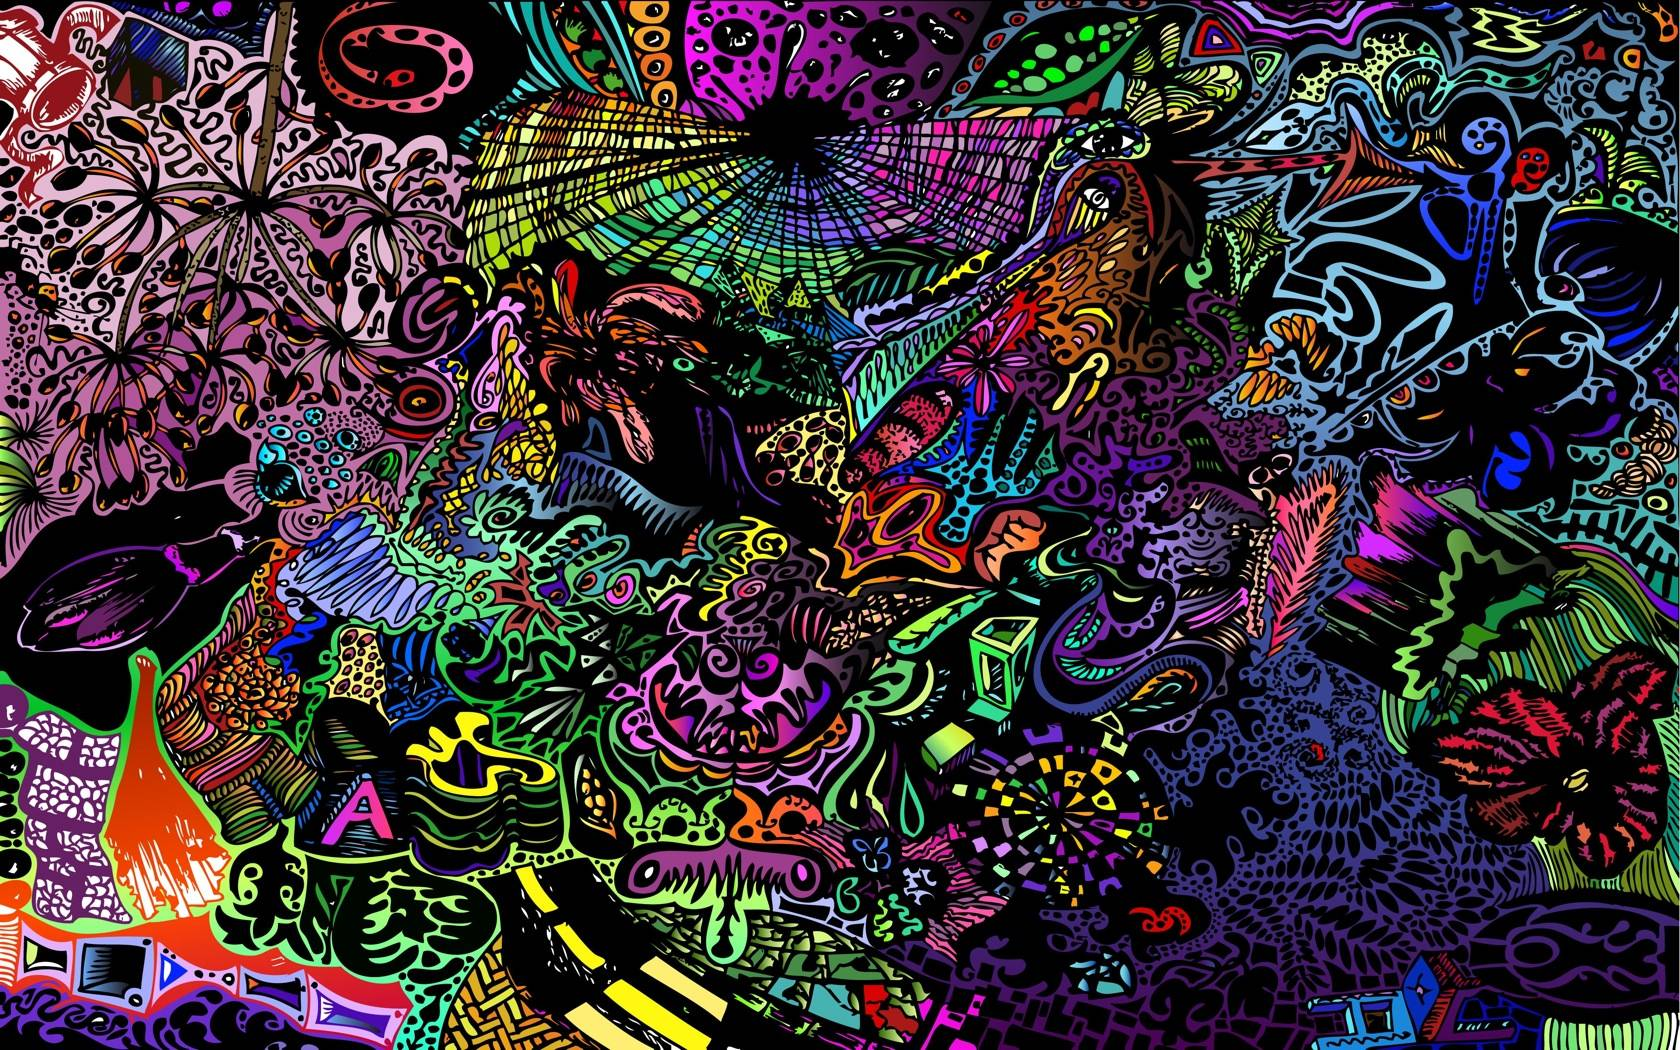 Trippy Android Wallpapers - Desktopwallpapers.